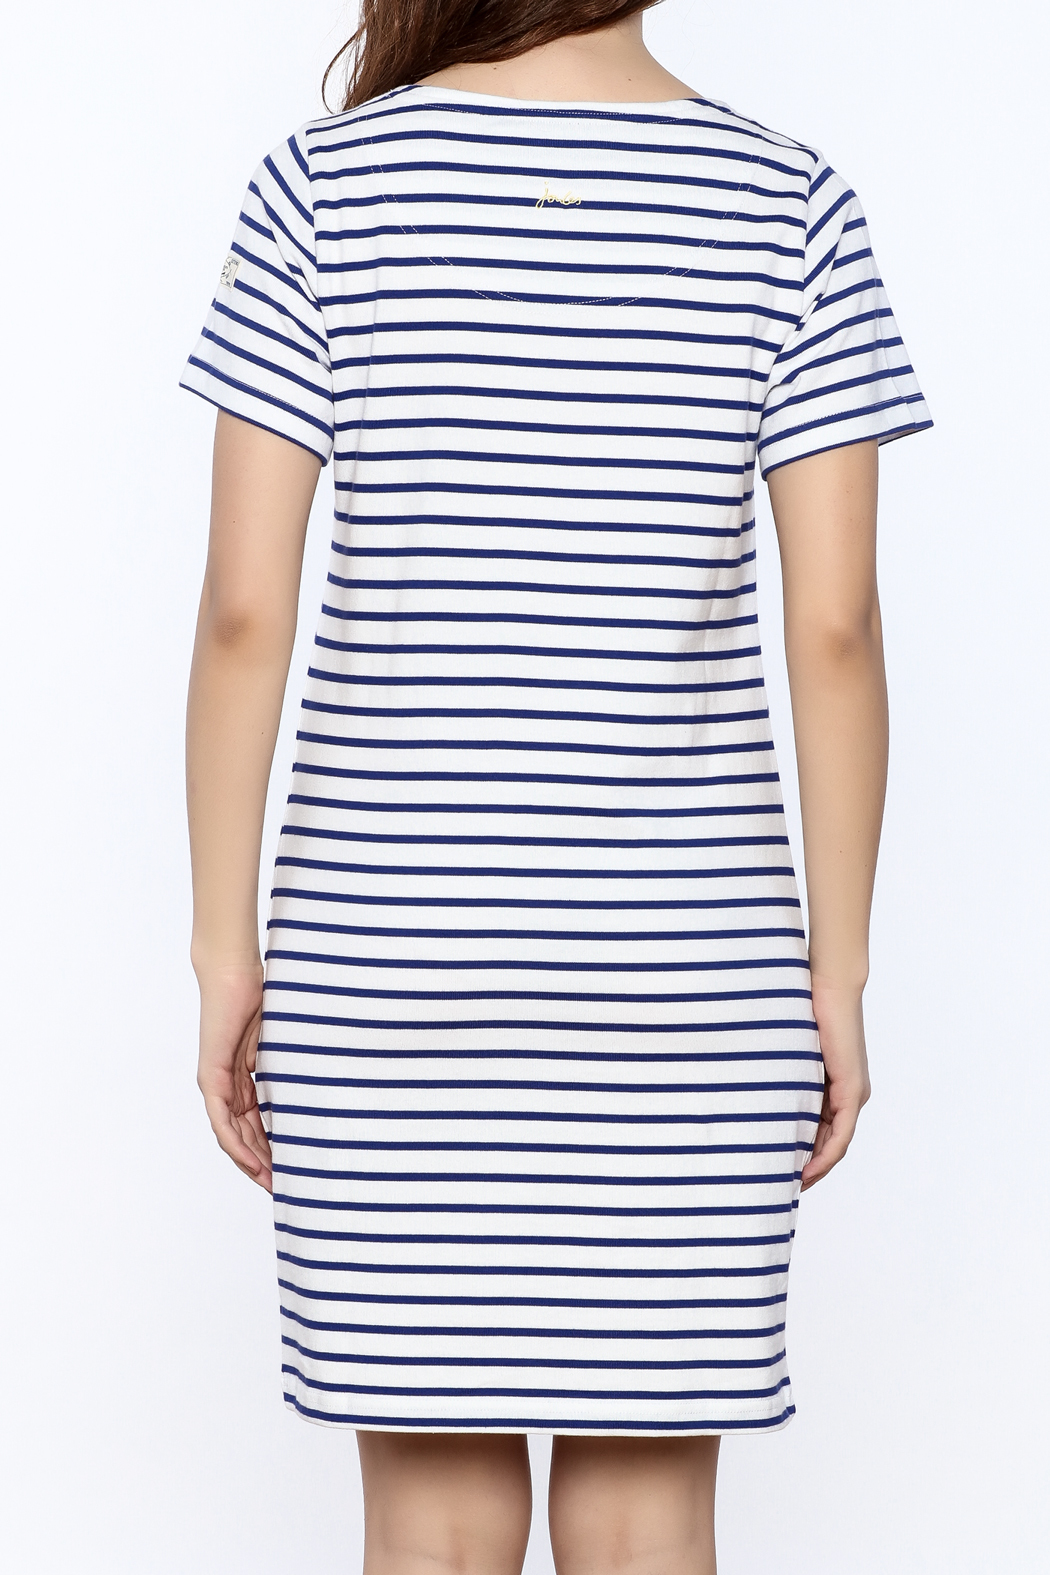 Joules Riviera Striped Dress - Back Cropped Image